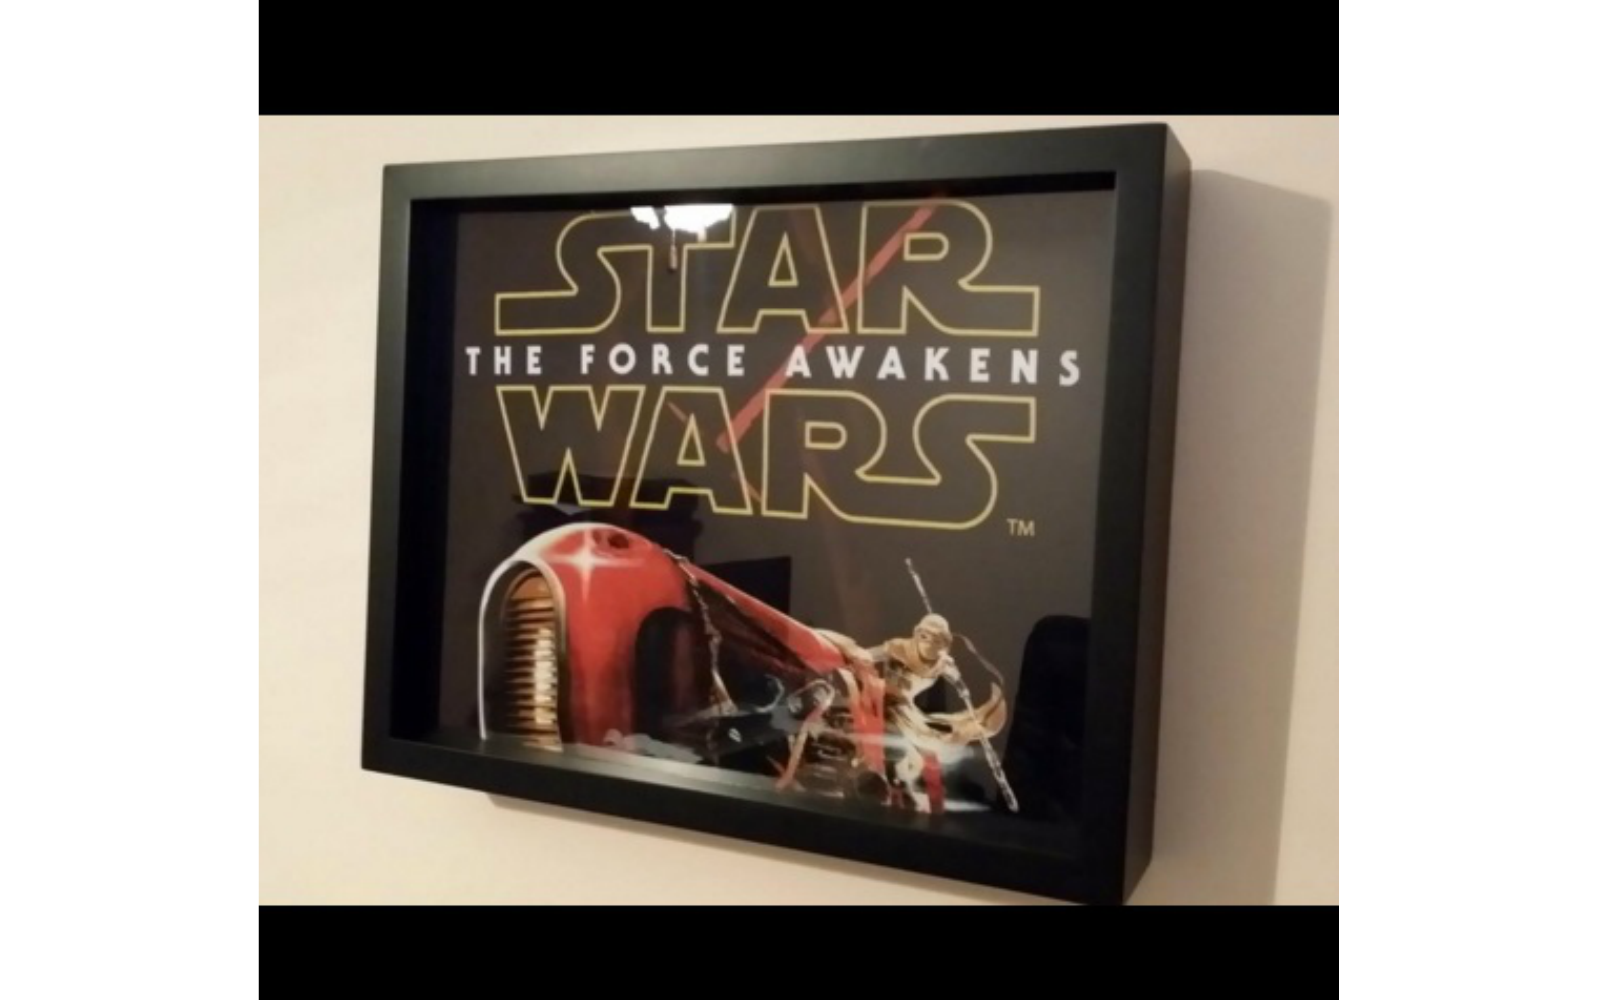 Star Wars T-Shirt in a Shart Tee Shirt Display Frame